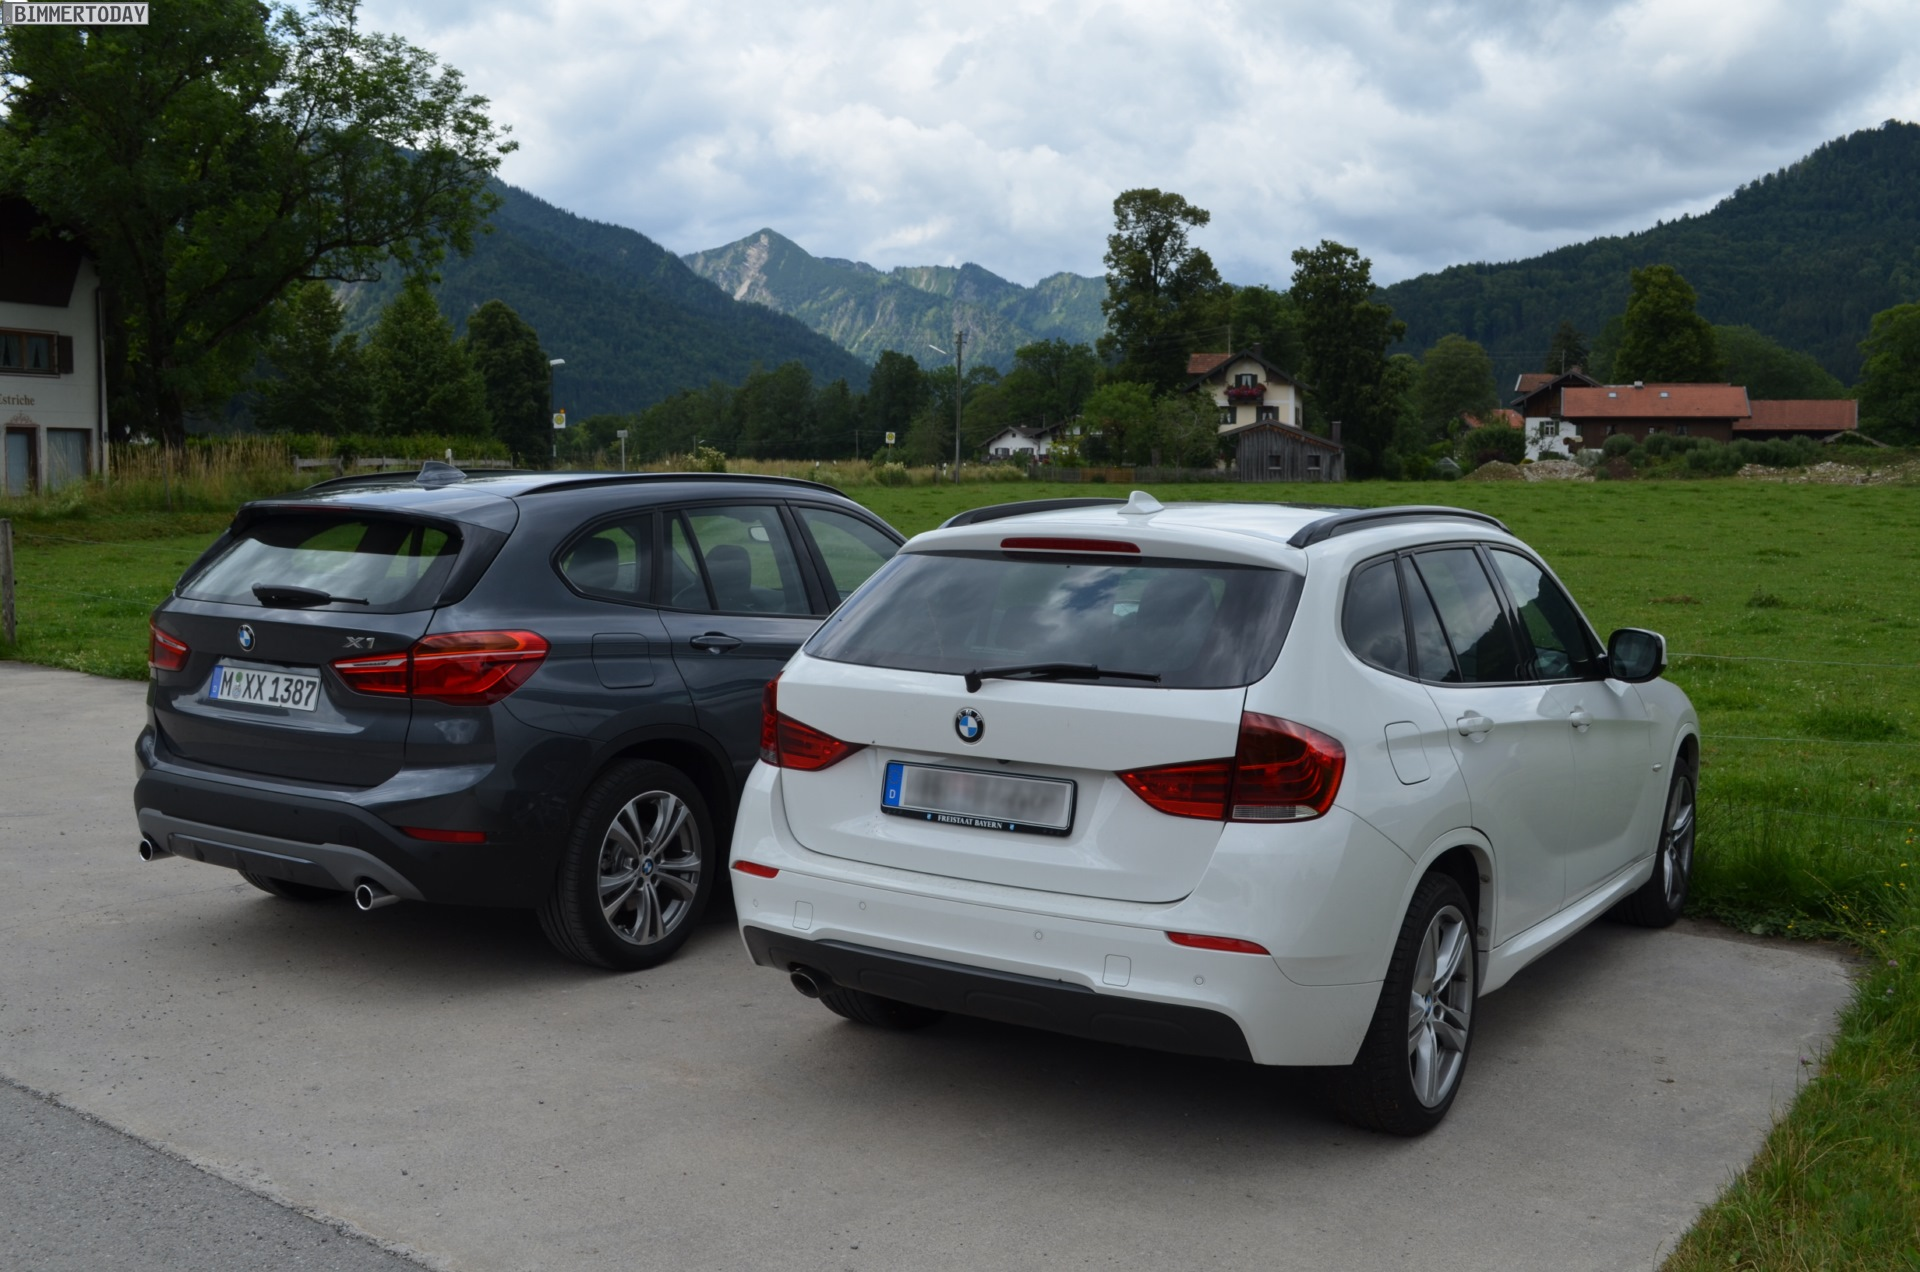 Bmw Model Lineup >> Real Life photos: E84 X1 vs. F48 X1